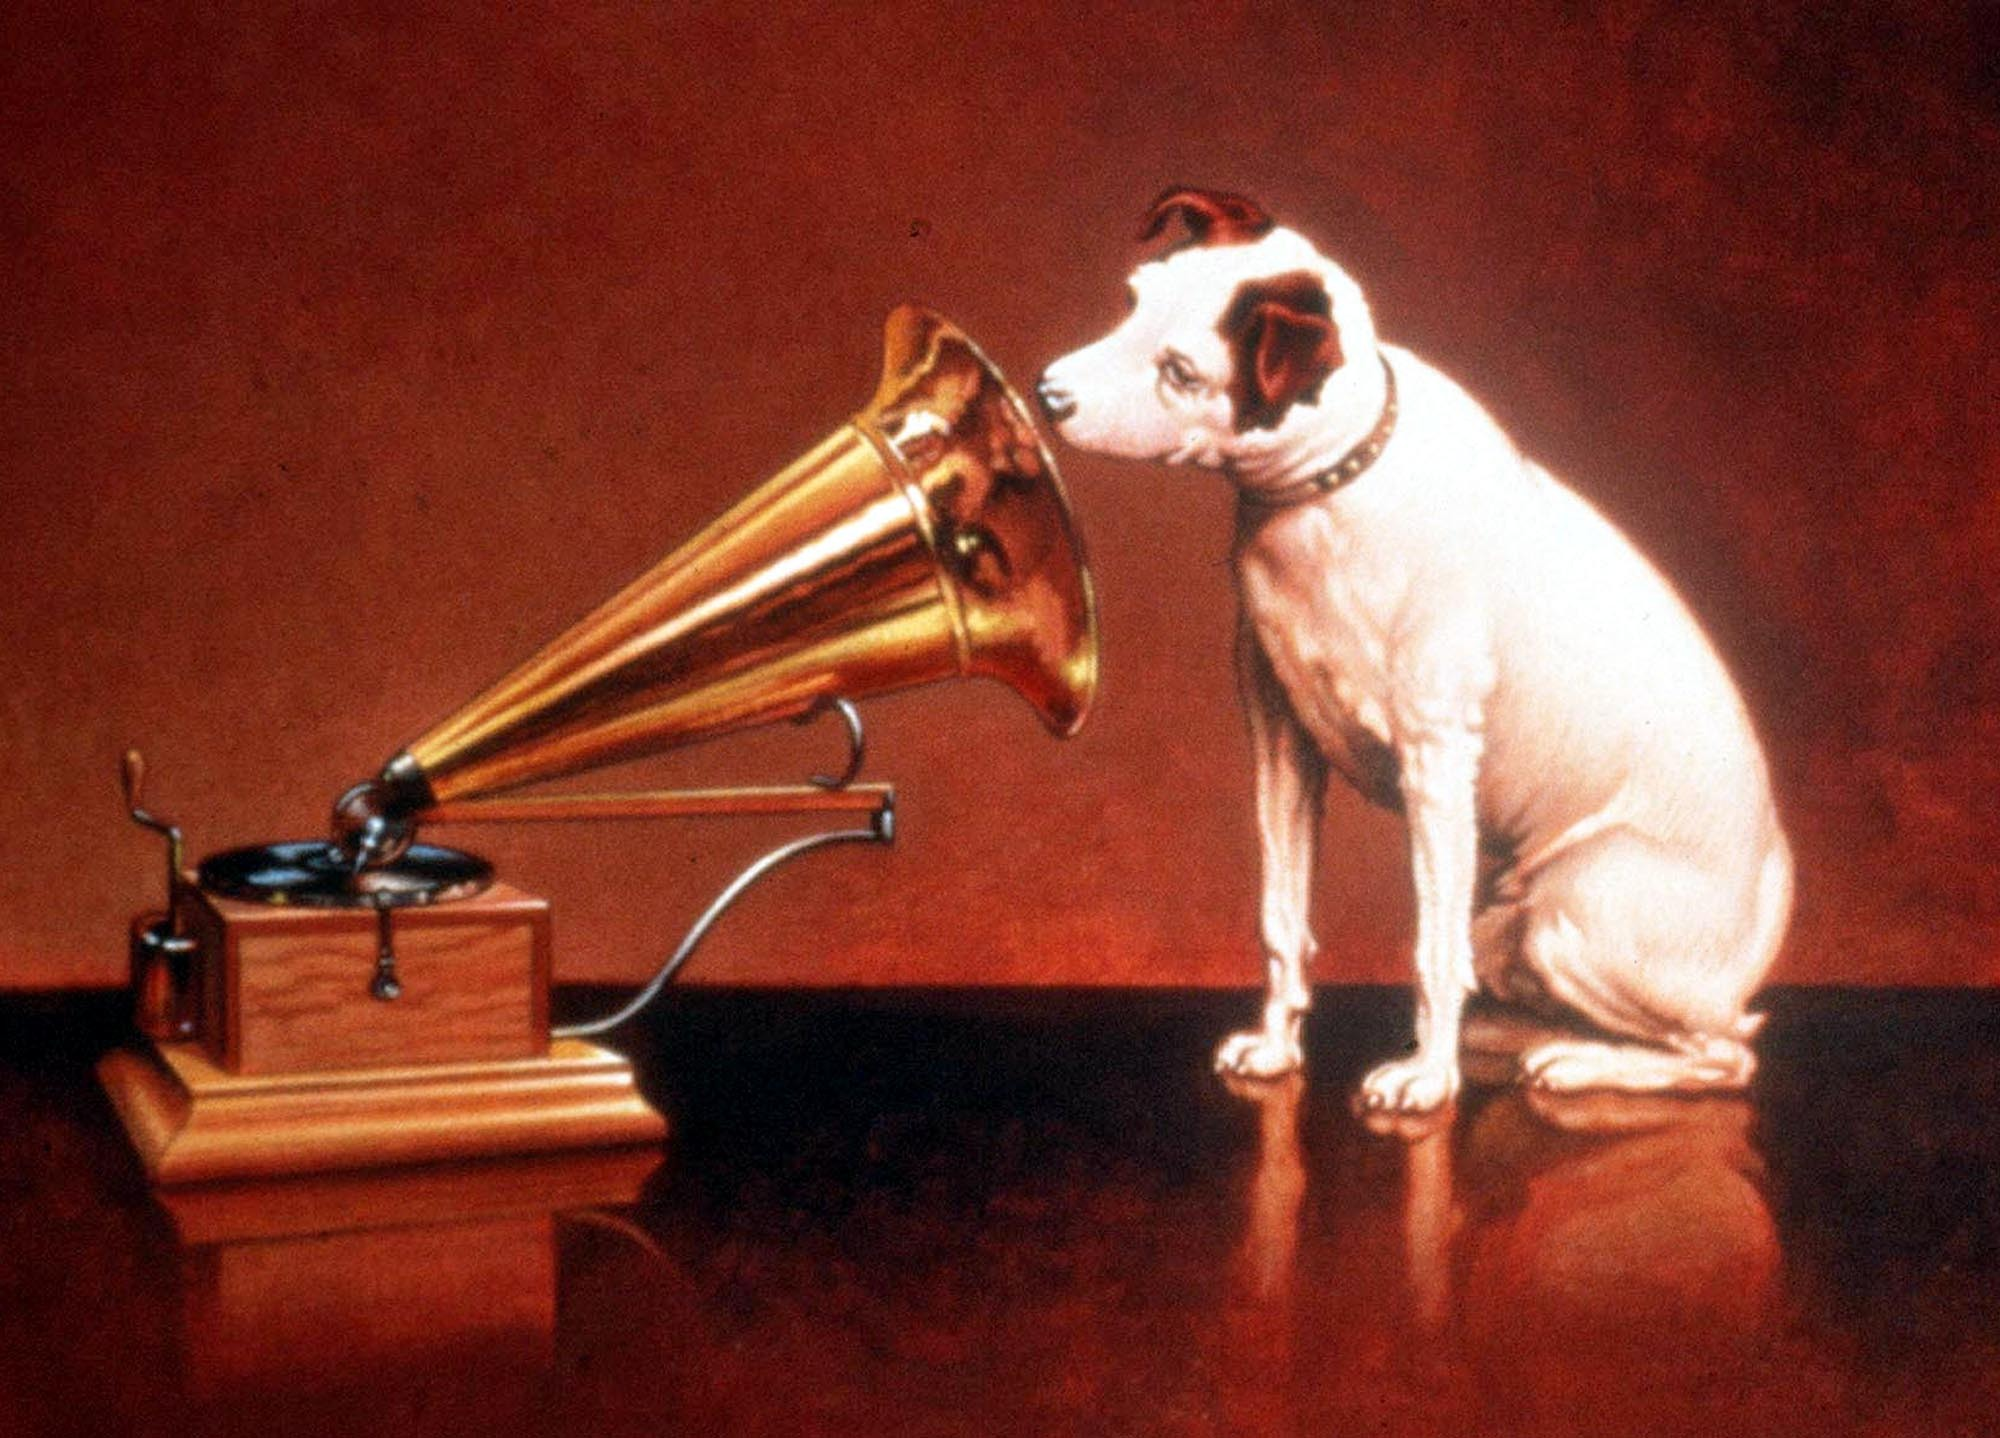 The original His Master's Voice image after the cylindrical phonograph was replaced by a flat gramophone